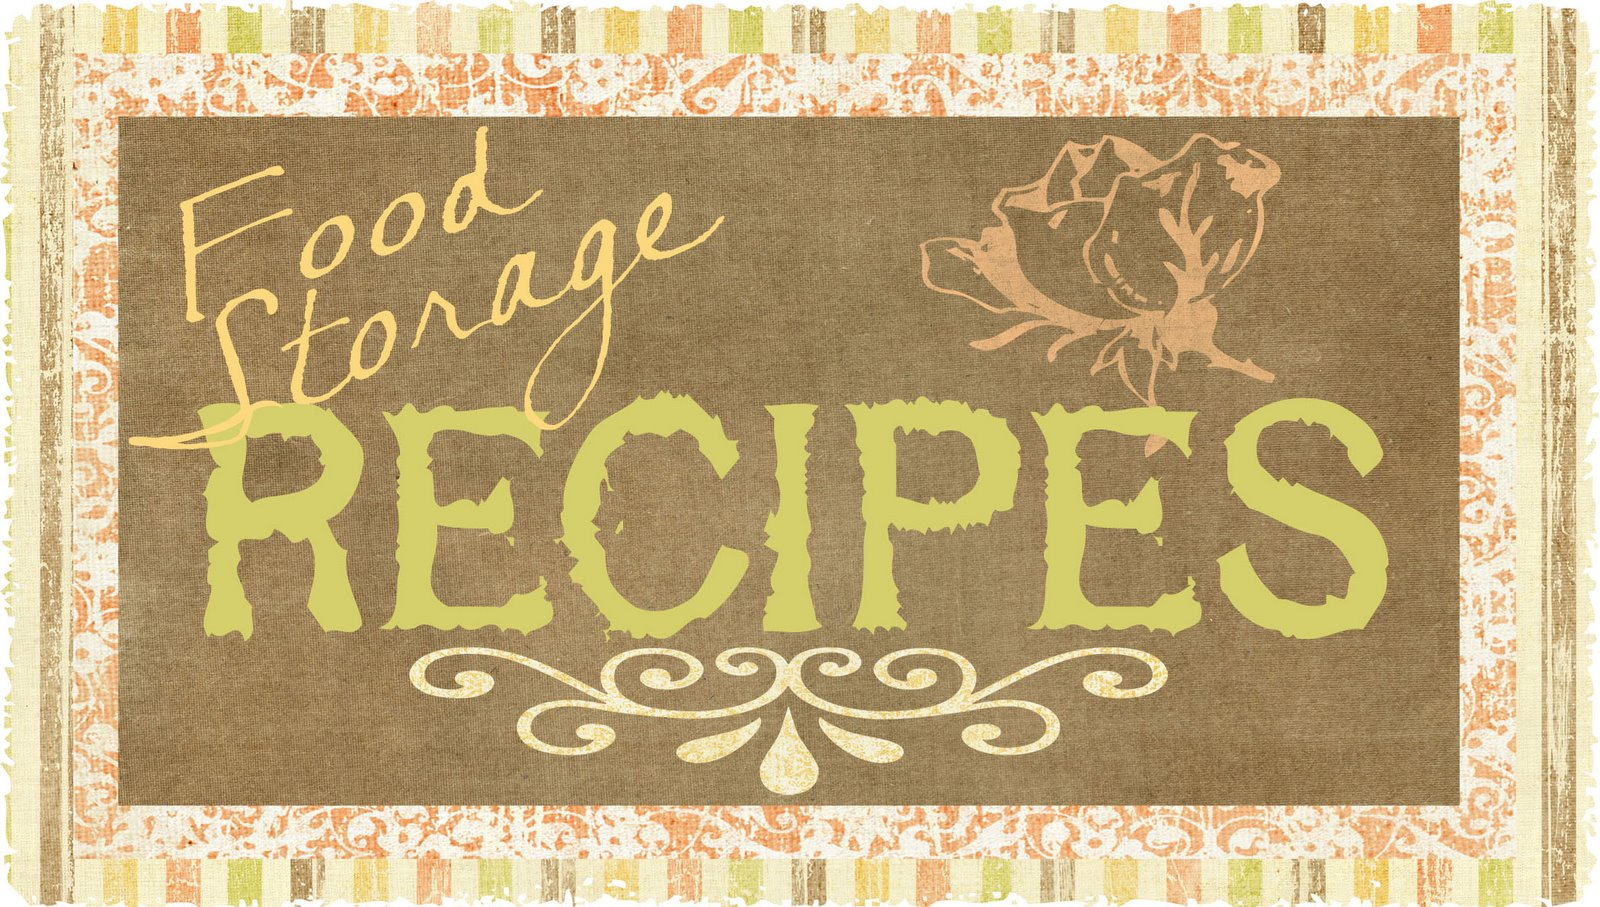 Food storage recipes helping you be food prepared